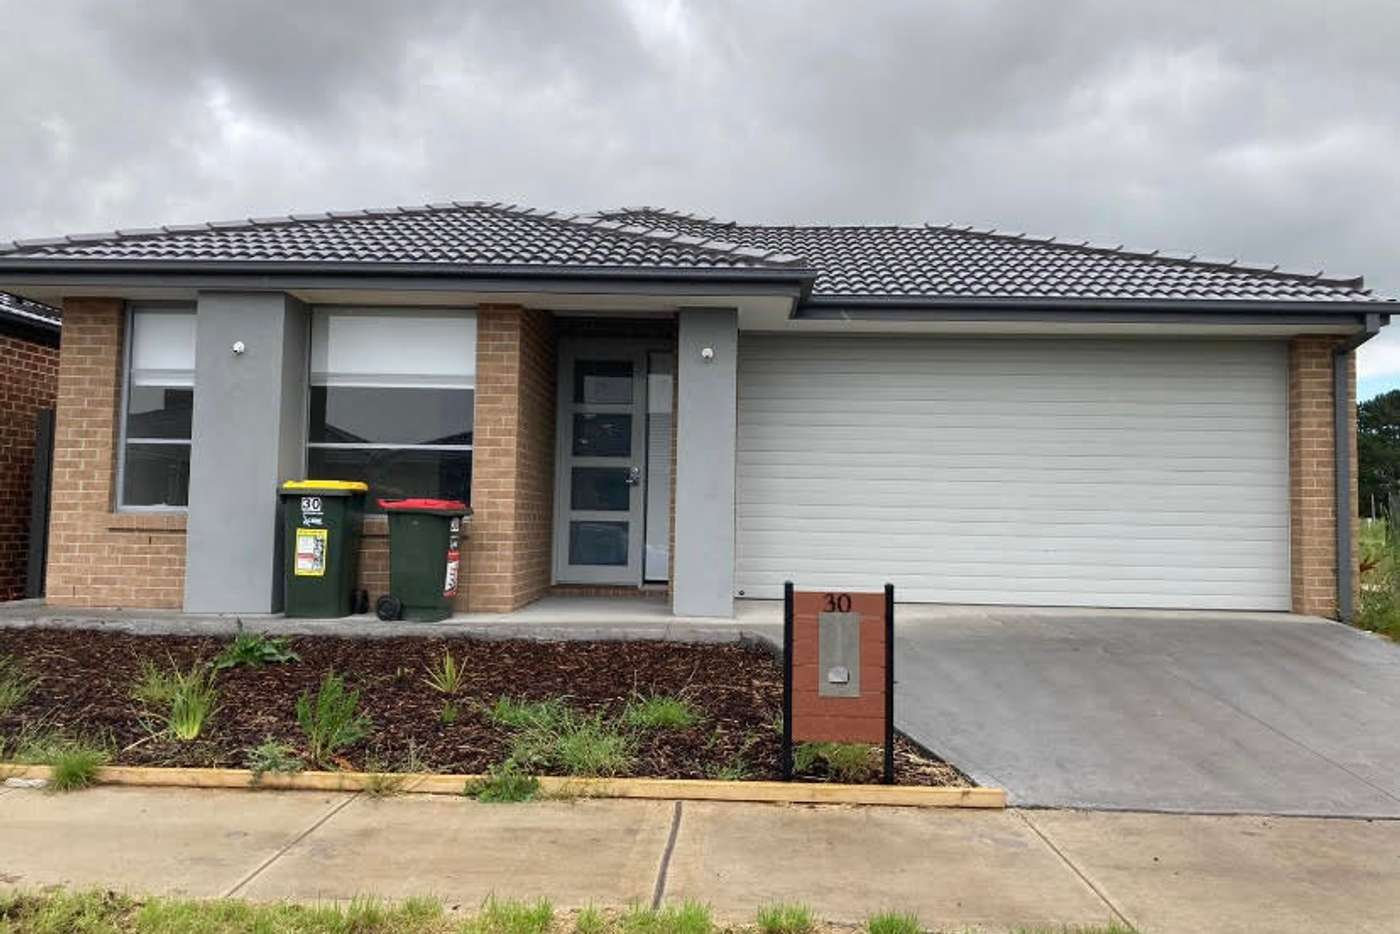 Main view of Homely house listing, 30 Bookham Circuit, Kalkallo VIC 3064